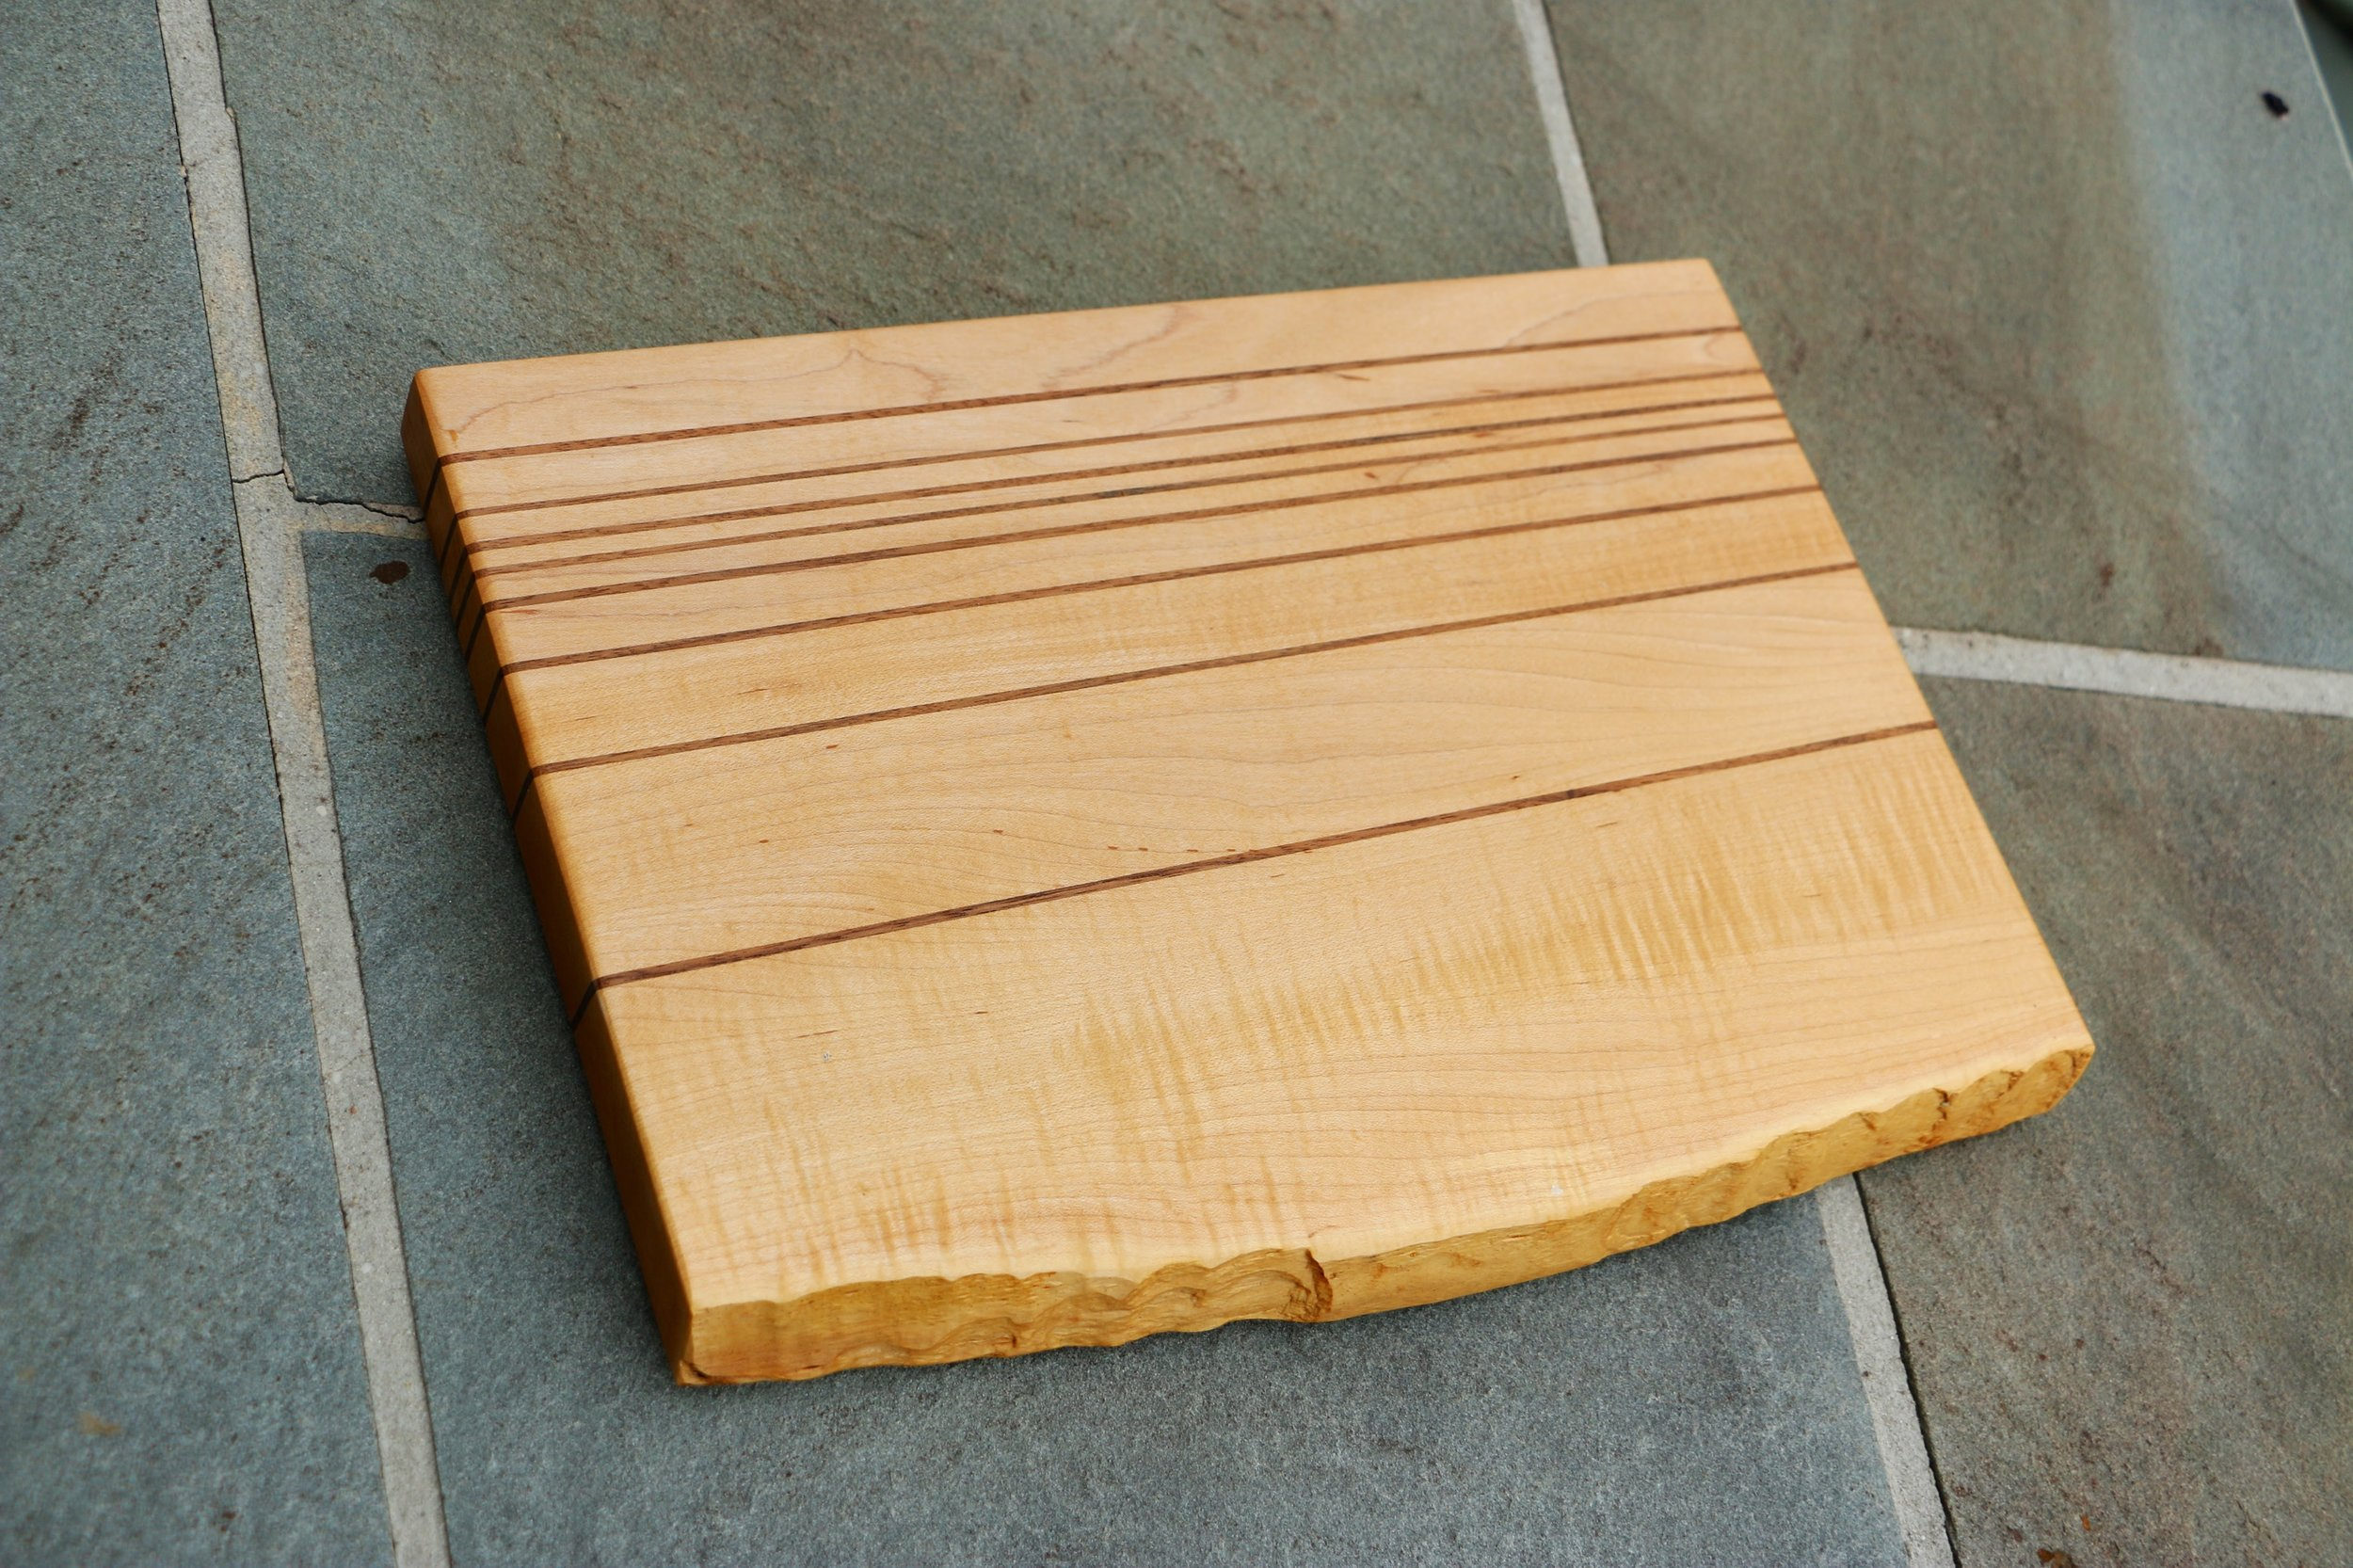 2017-03-25_09-36-15_Cutting Board.jpg